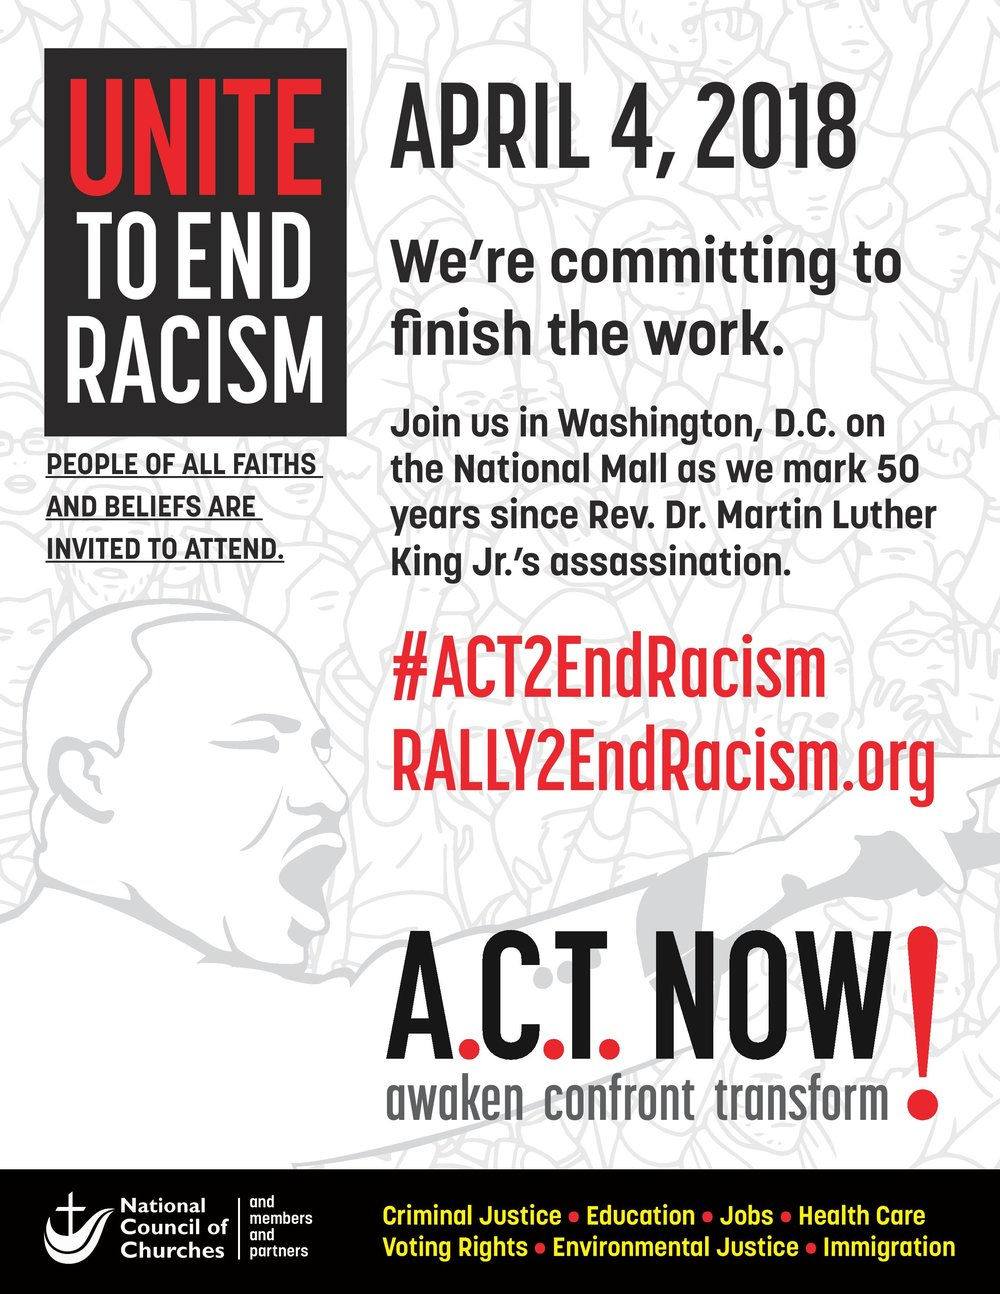 4-4 unite to end racism flyer page 1.jpg